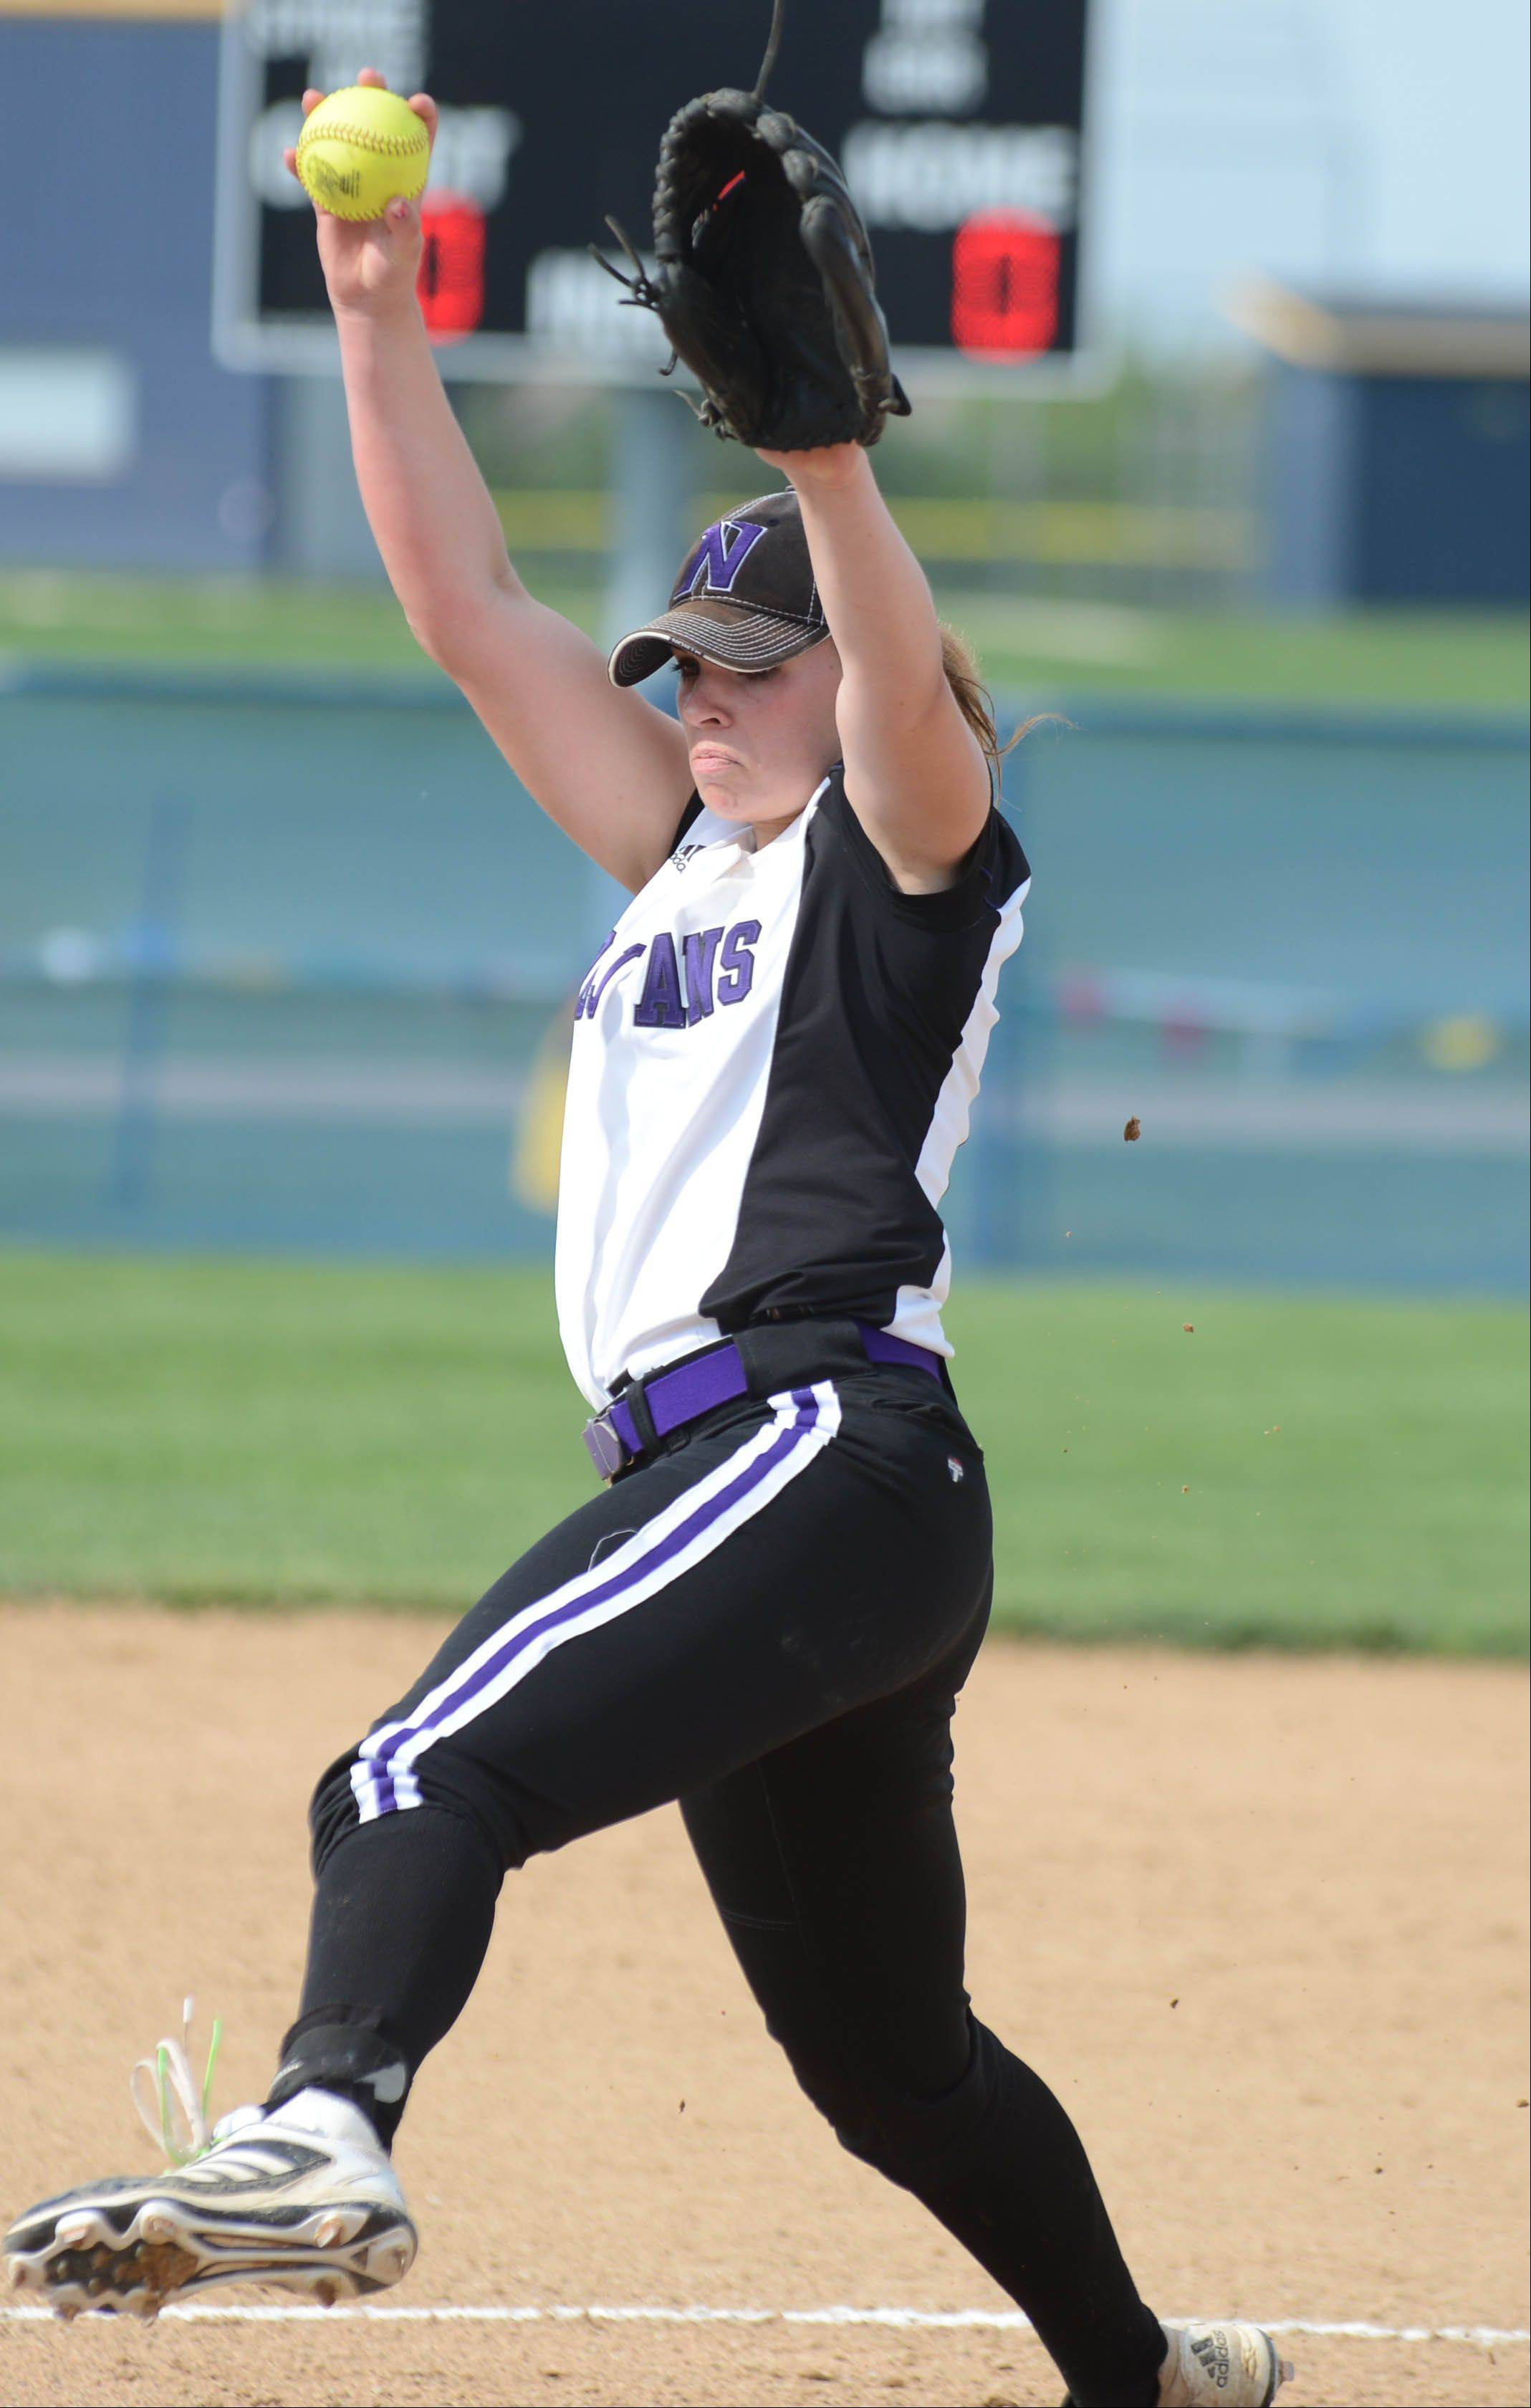 Elaine Heflin of Downers Grove North on the mound during the Class 4A Neuqua Valley sectional semifinals softball game Wednesday.